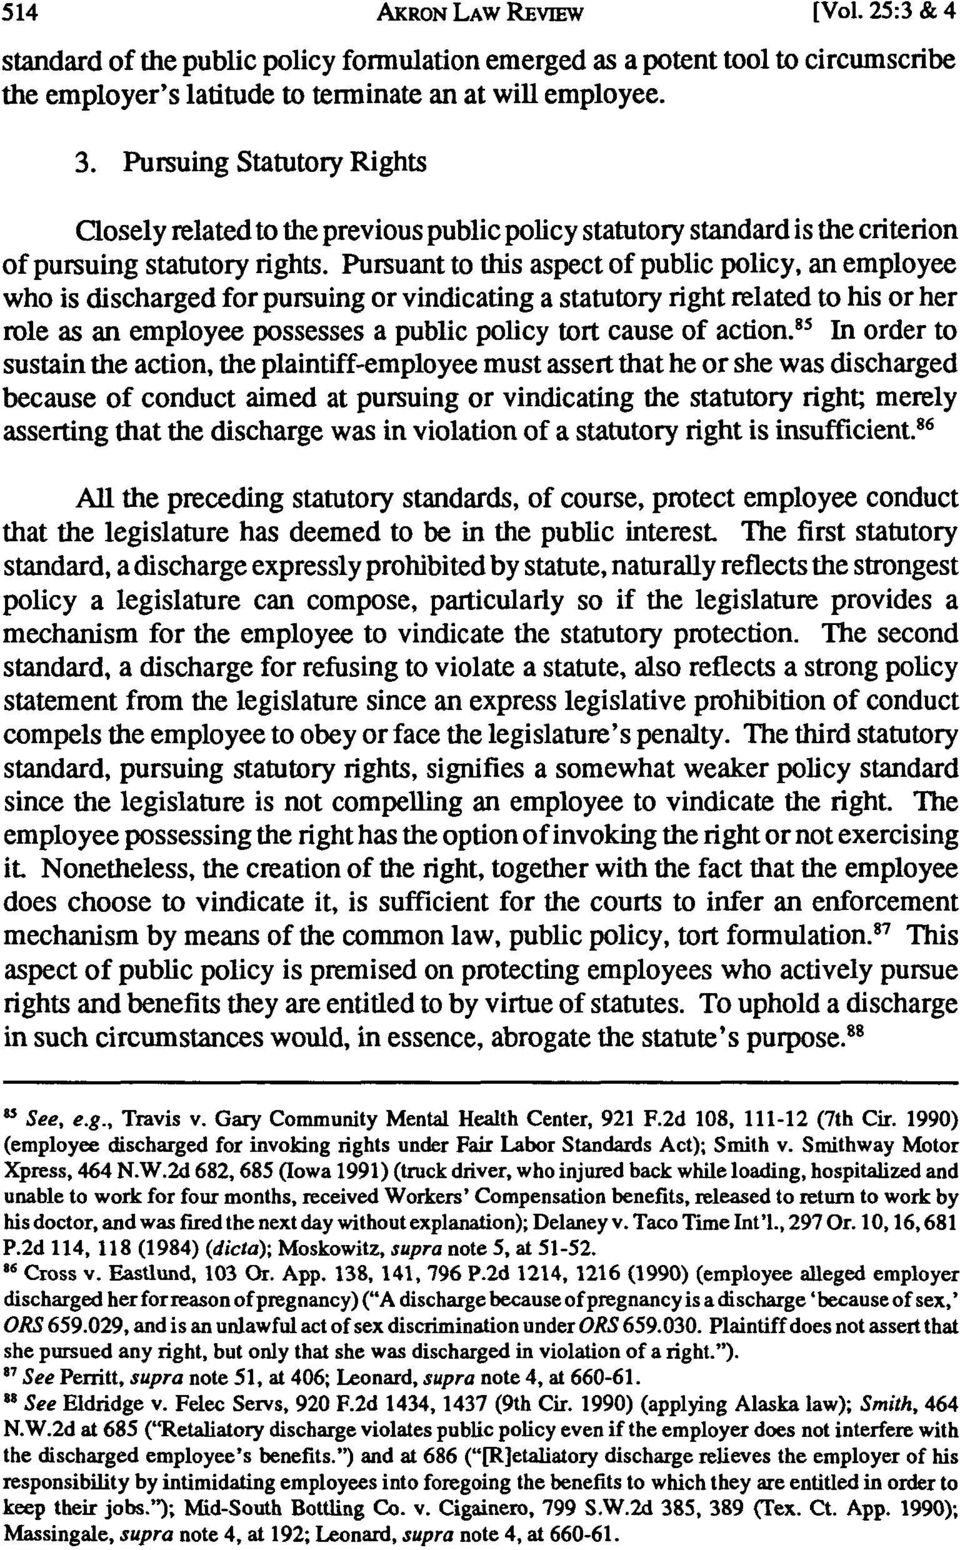 Pursuant to this aspect of public policy, an employee who is discharged for pursuing or vindicating a statutory right related to his or her role as an employee possesses a public policy tort cause of